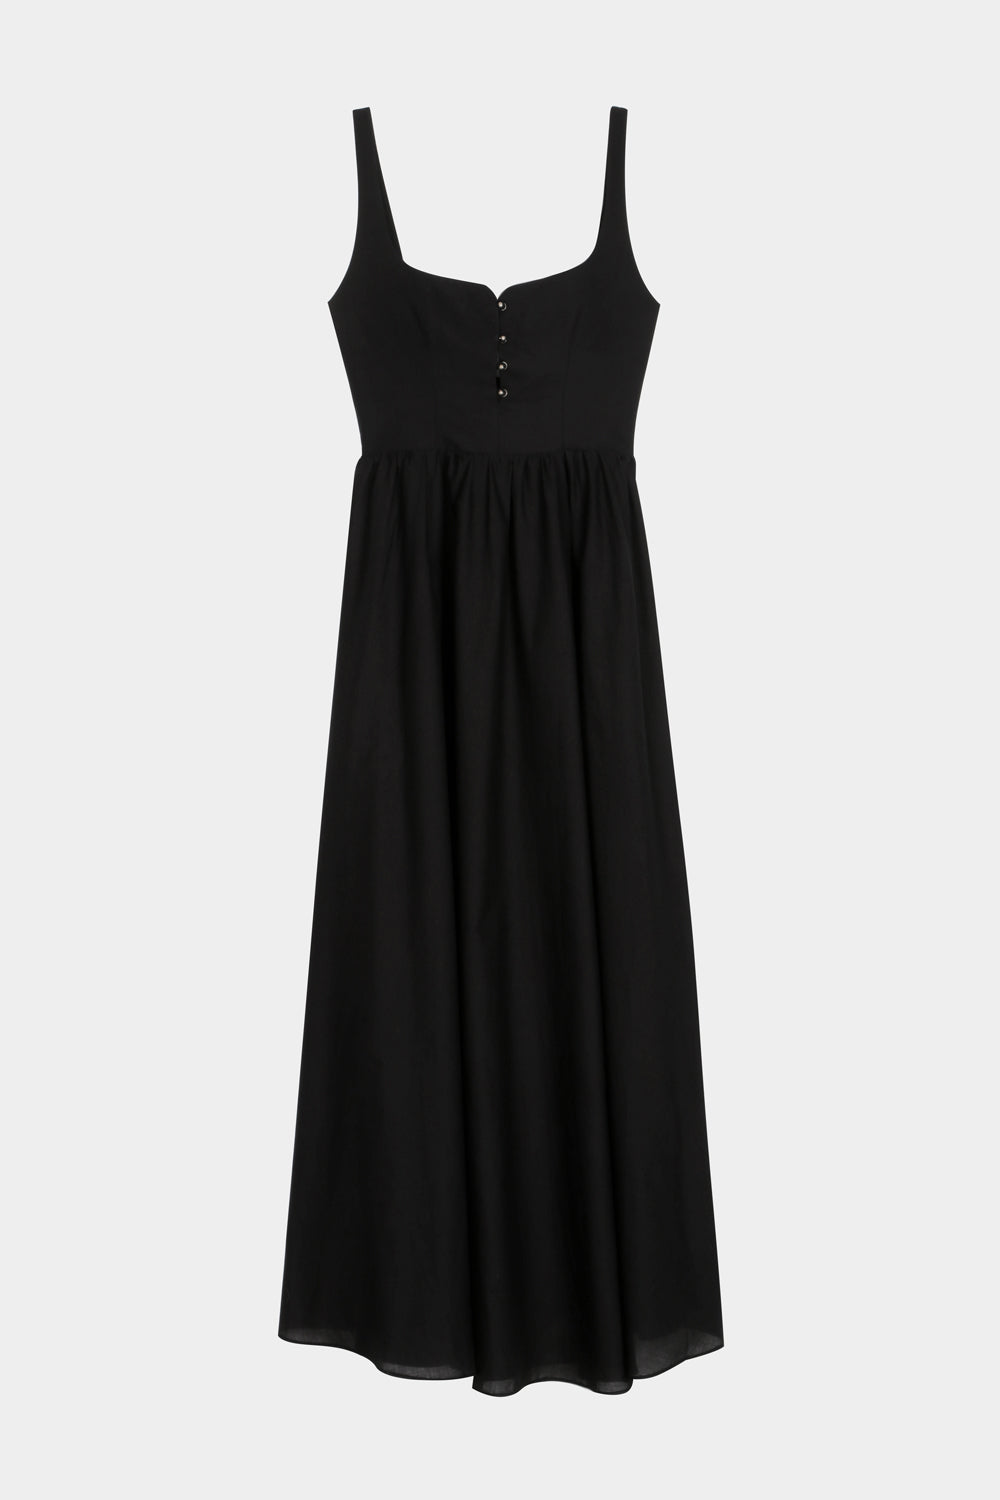 BLACK LONG CORSET DRESS